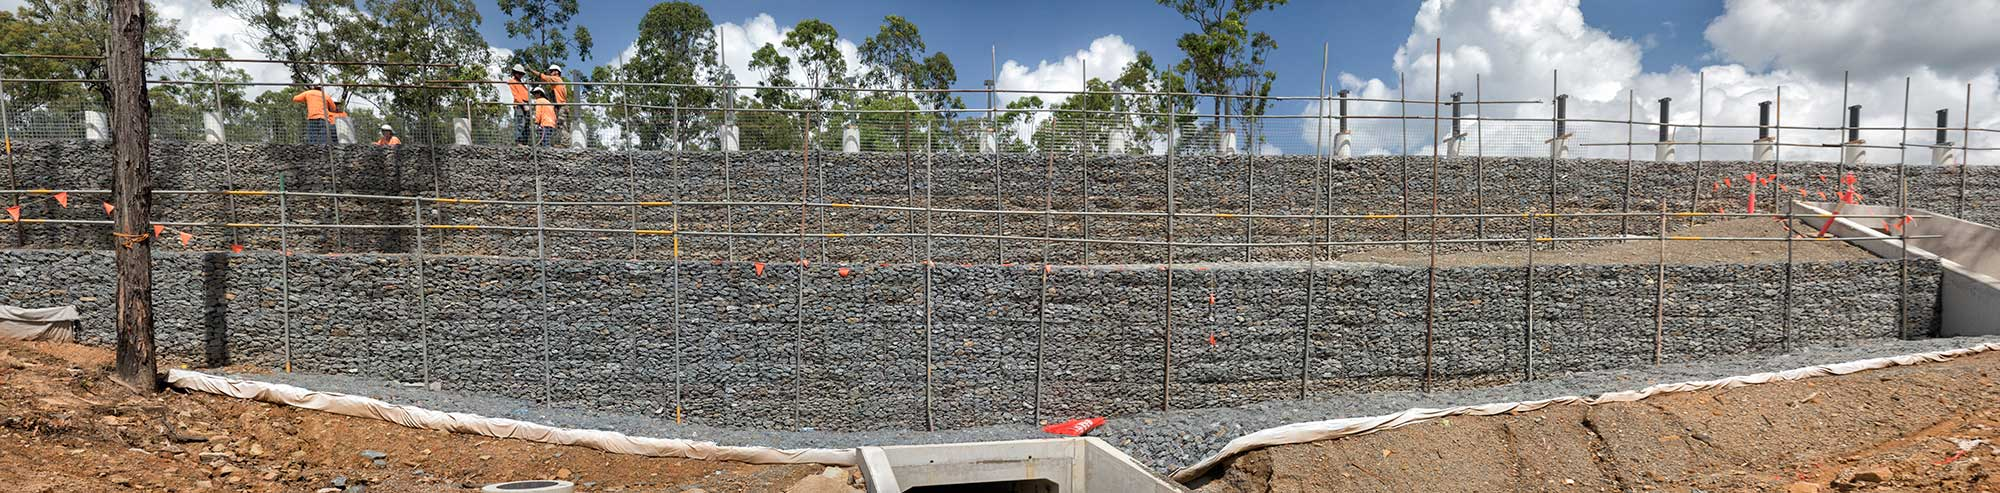 Concrib Gabion Wall Lamington National Park Landslip Repair Aerial photography